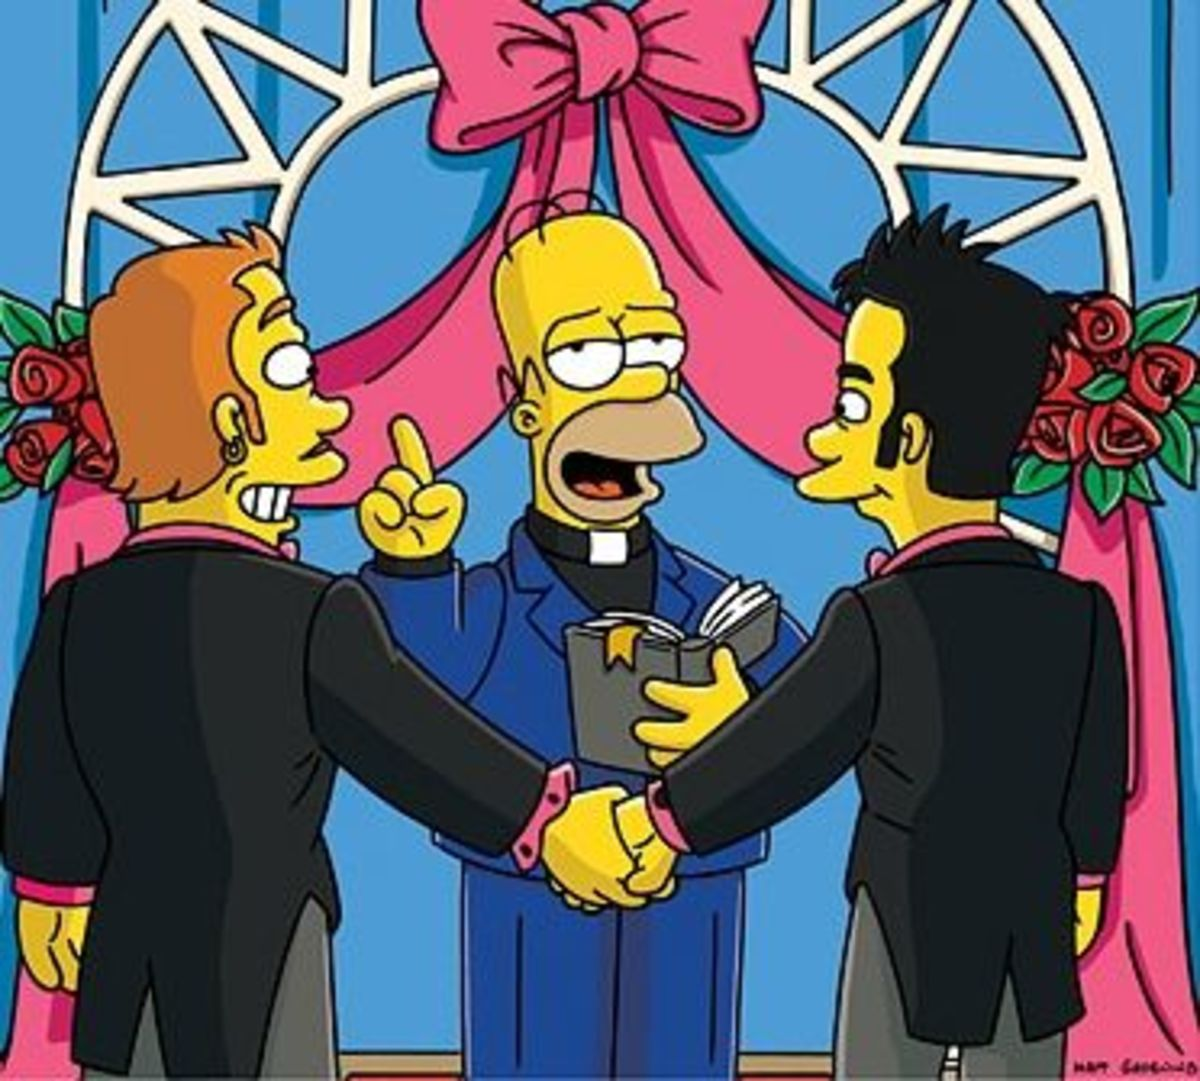 Gay marriage - the Simpson's think it's A-OK.